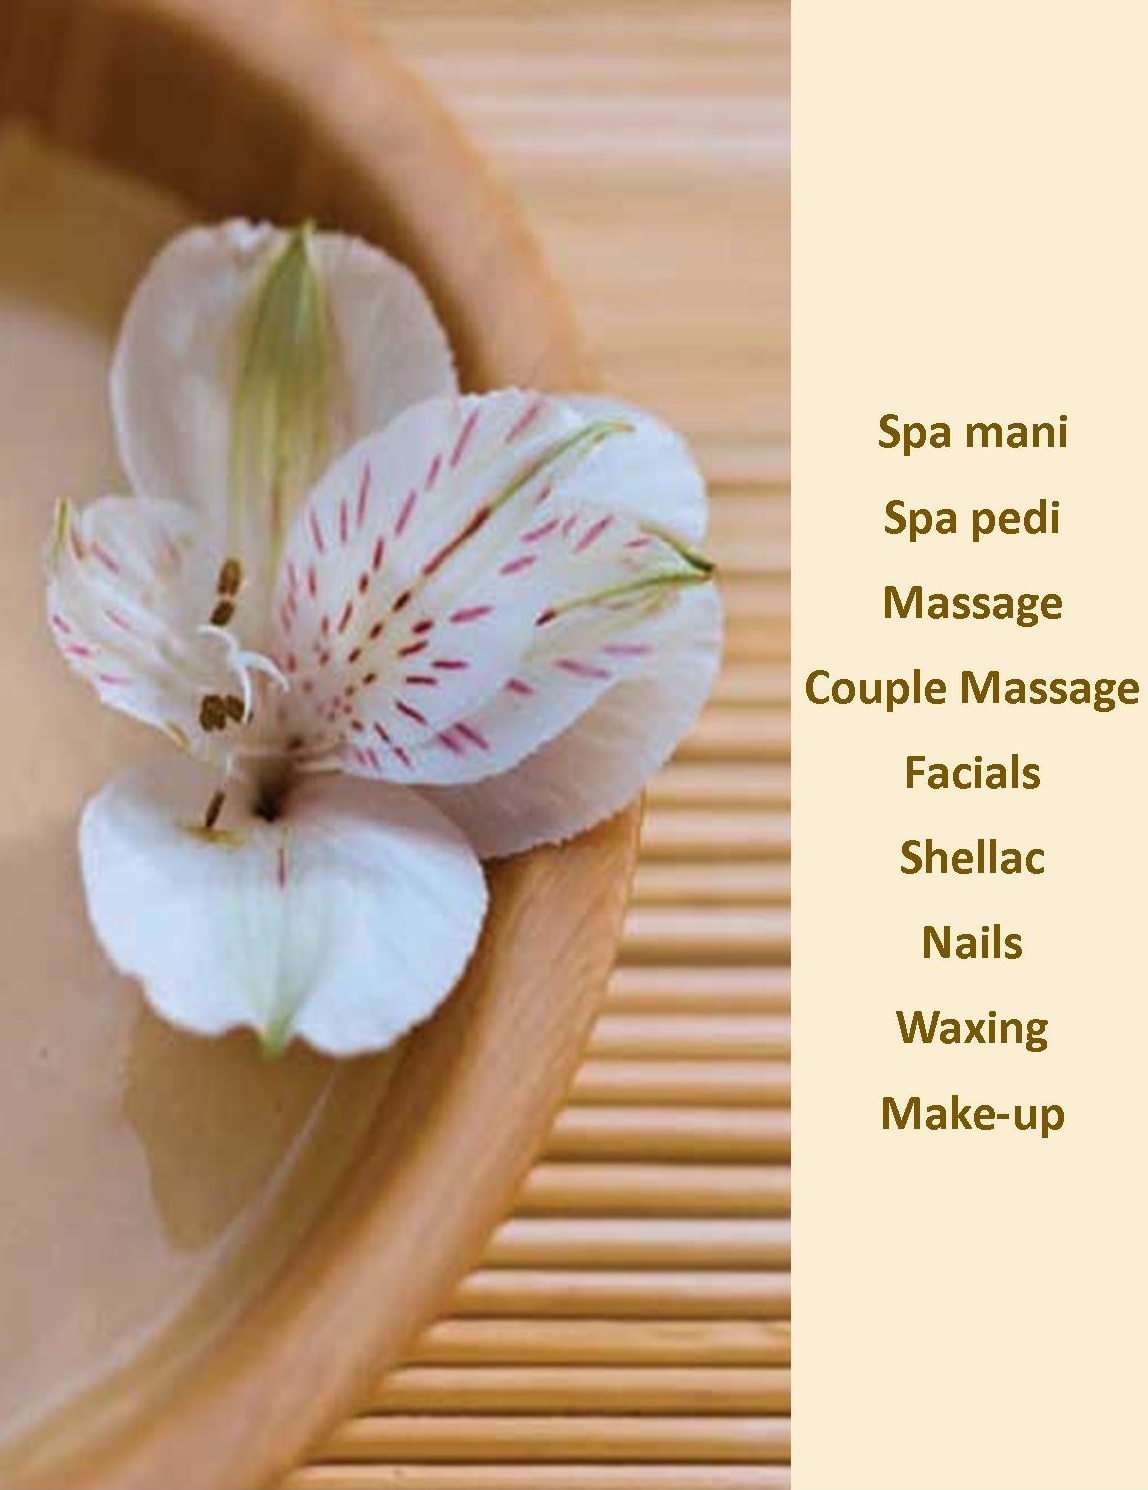 tlc spa services (1)